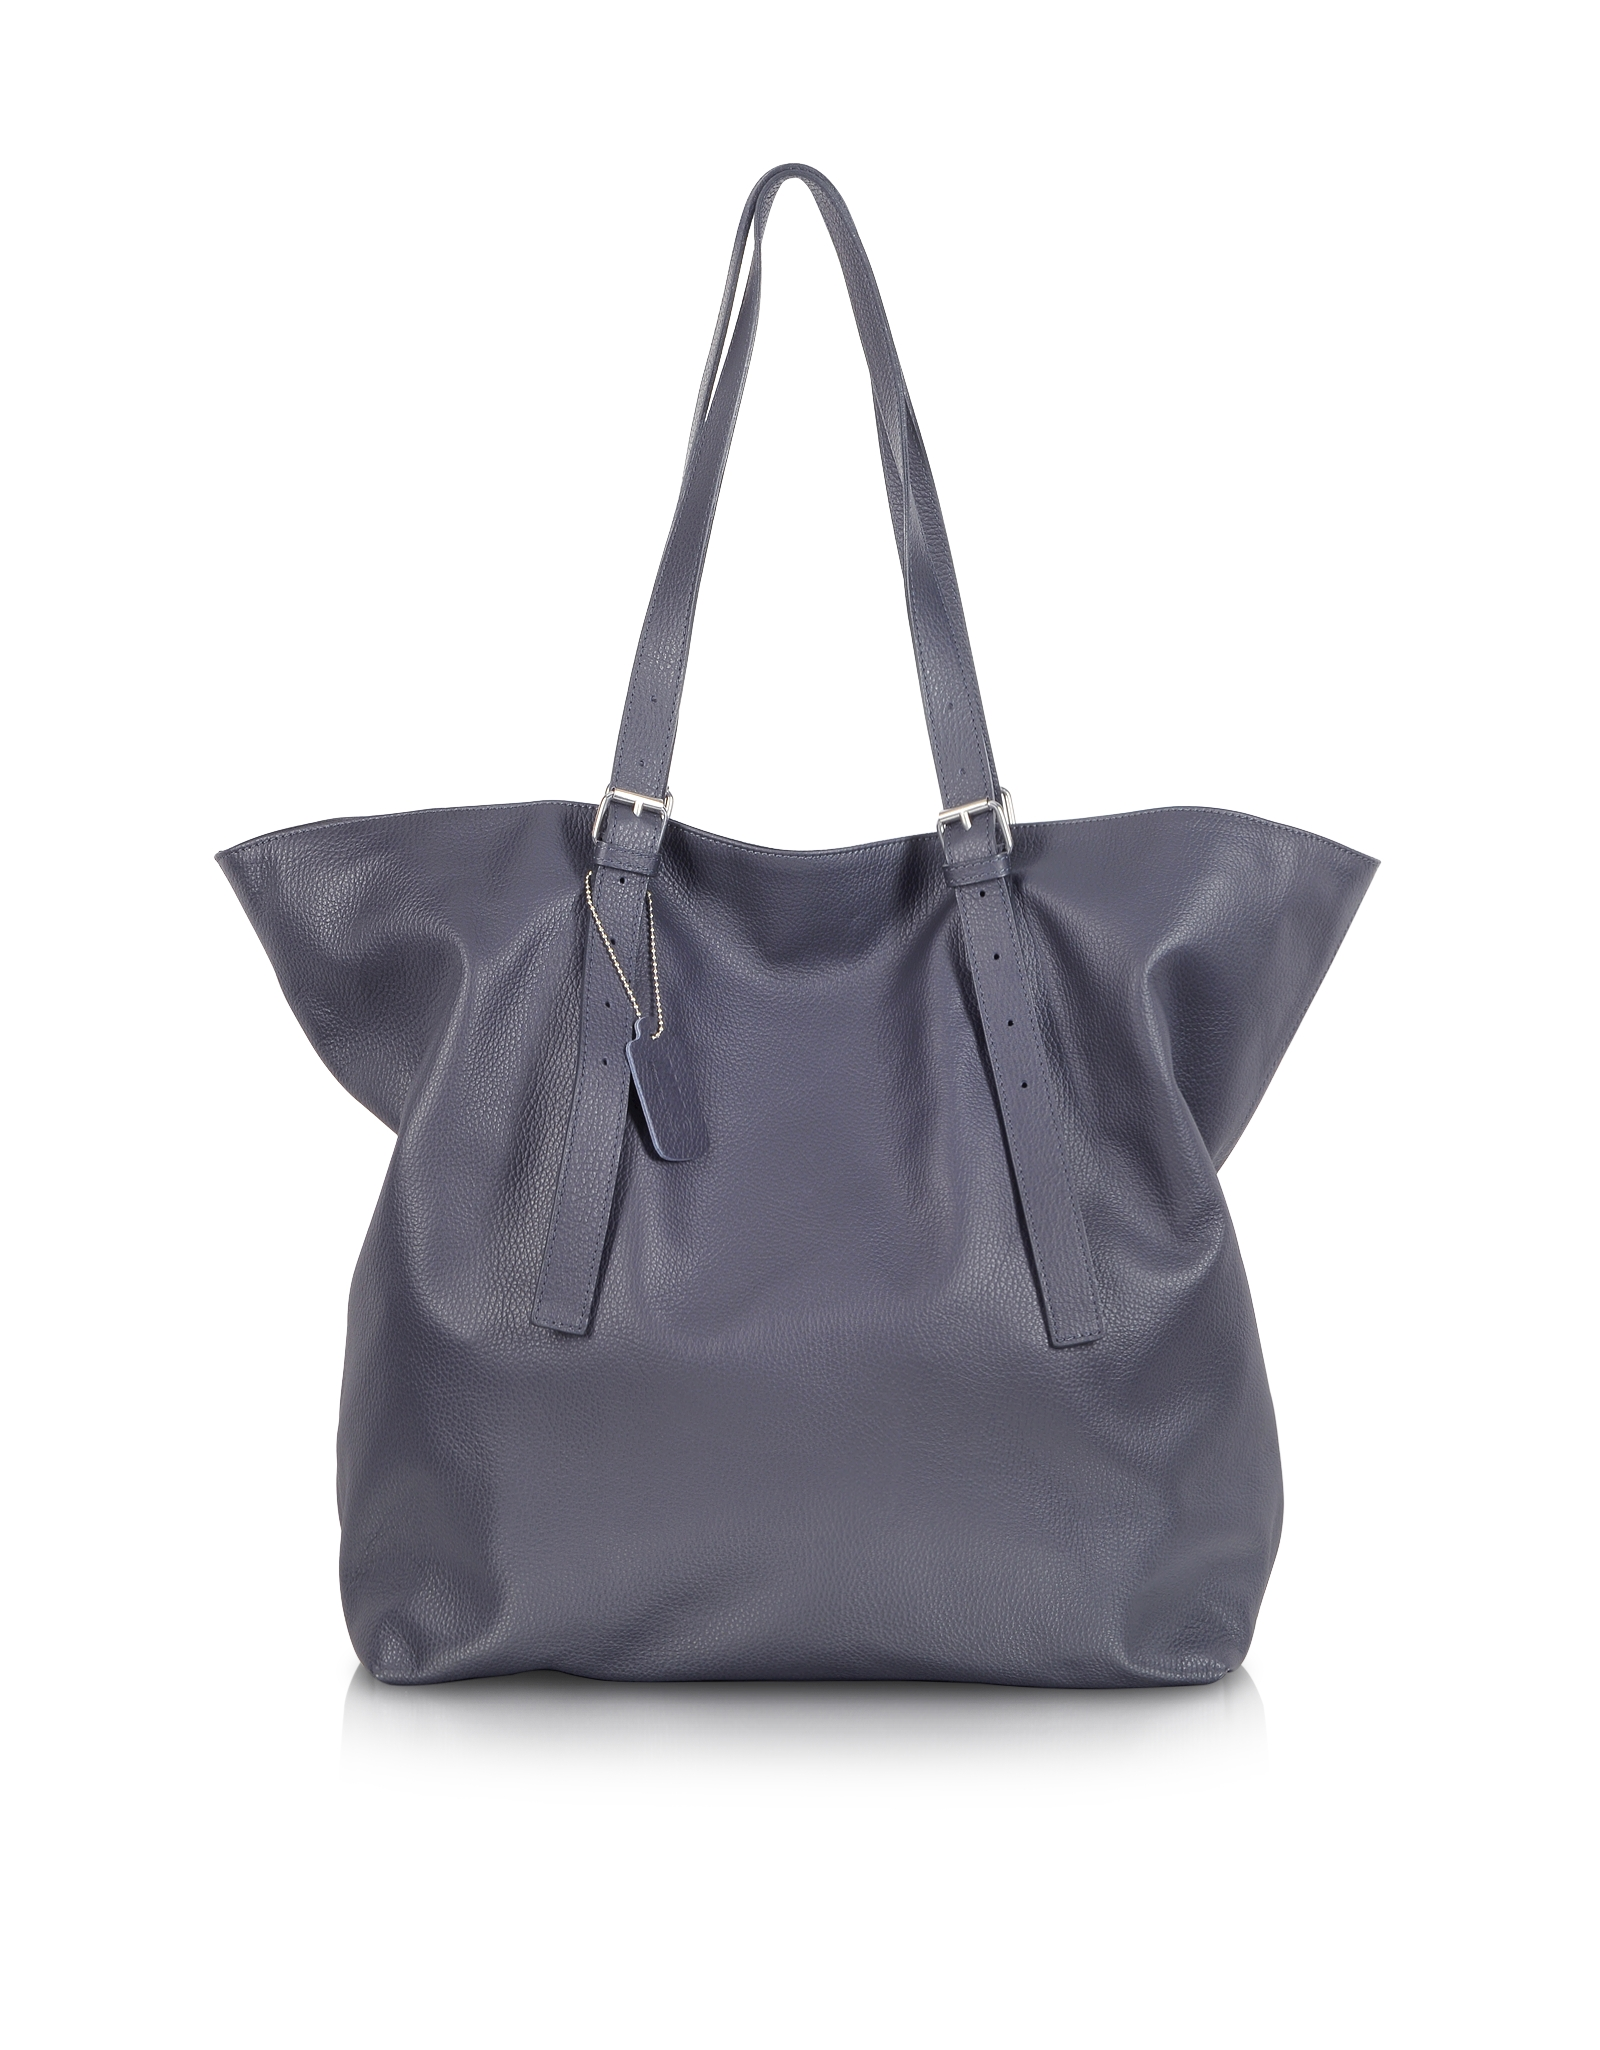 Maison Margiela Large Blue Leather Tote Bag in Blue